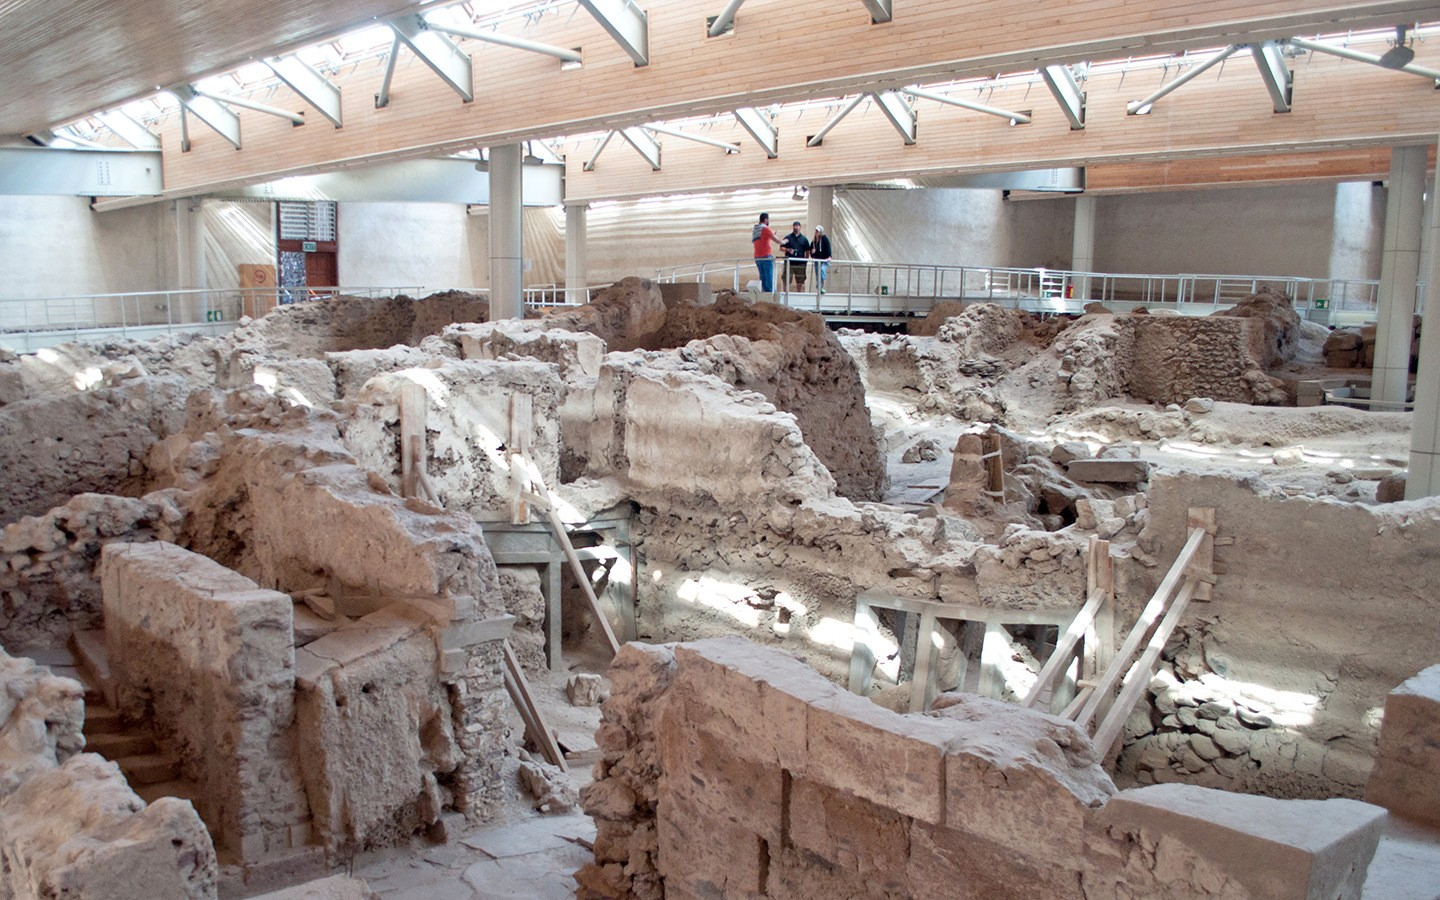 The ruined ancient city of Akrotiri